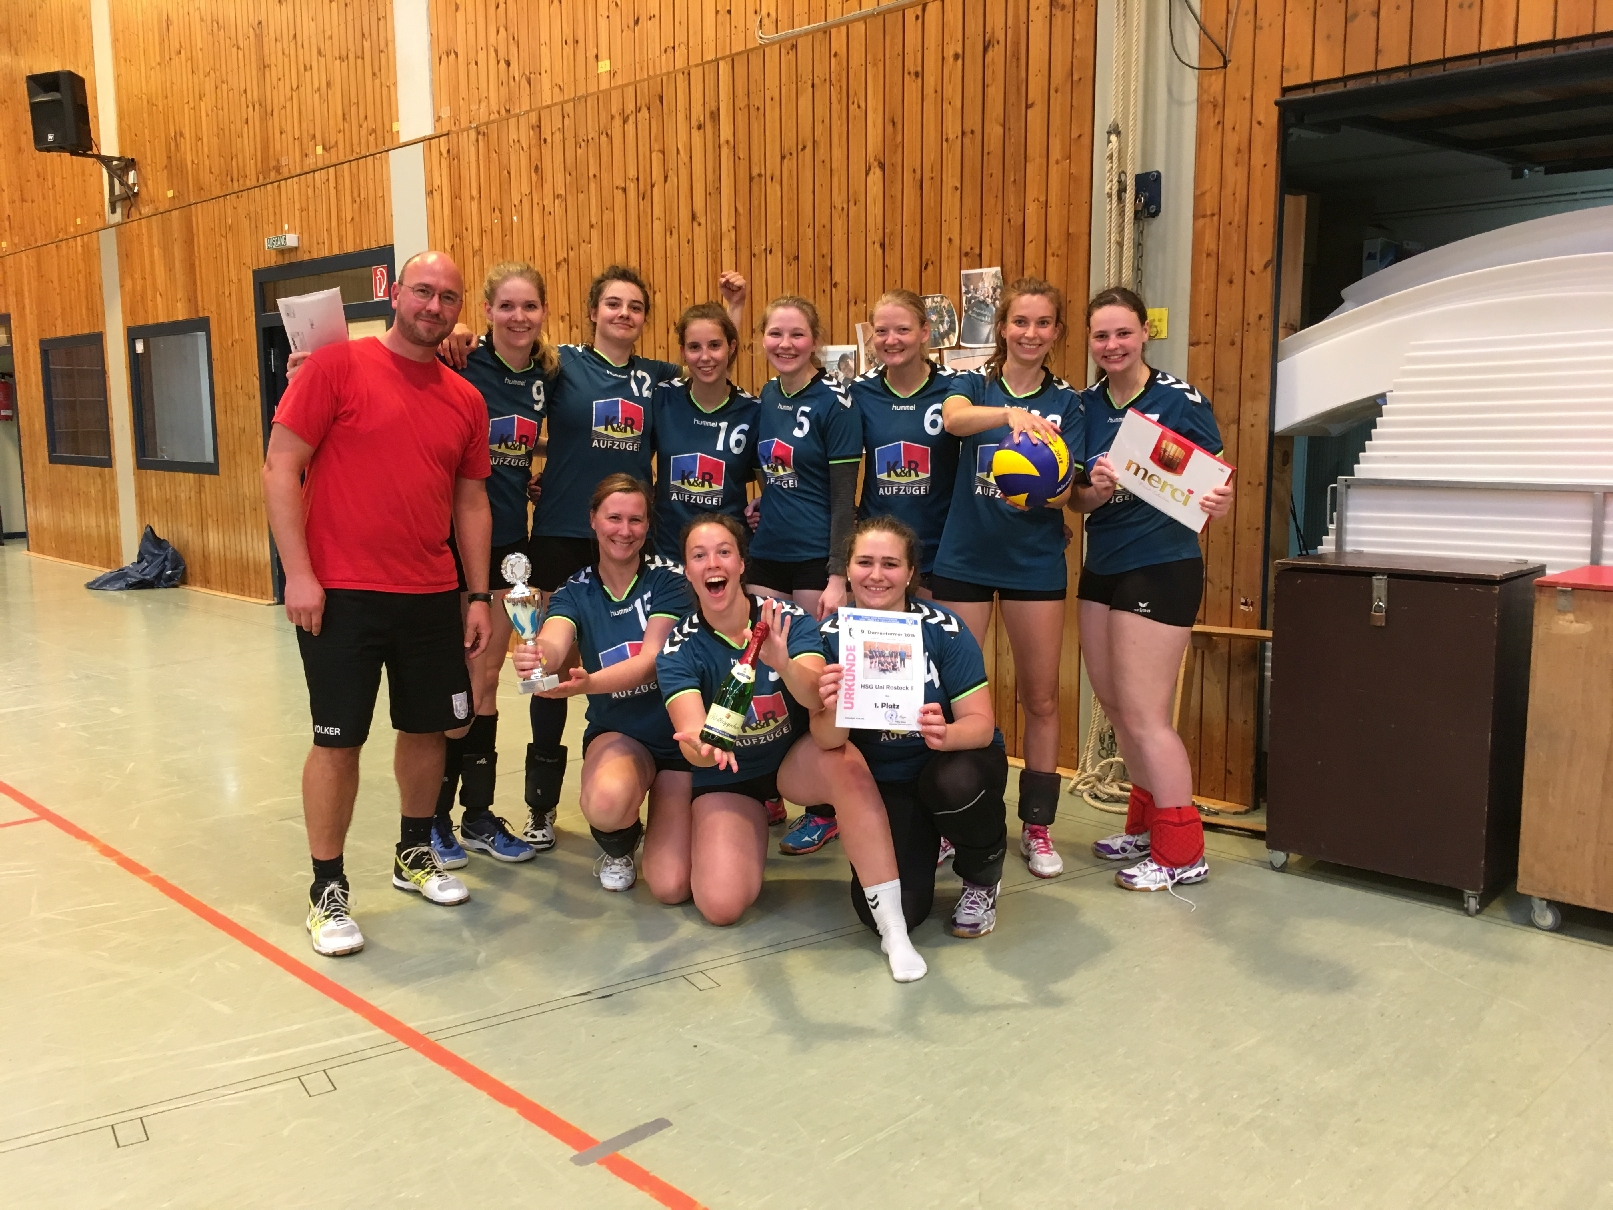 20180526 9 Damenvolleyballturnier Bild28